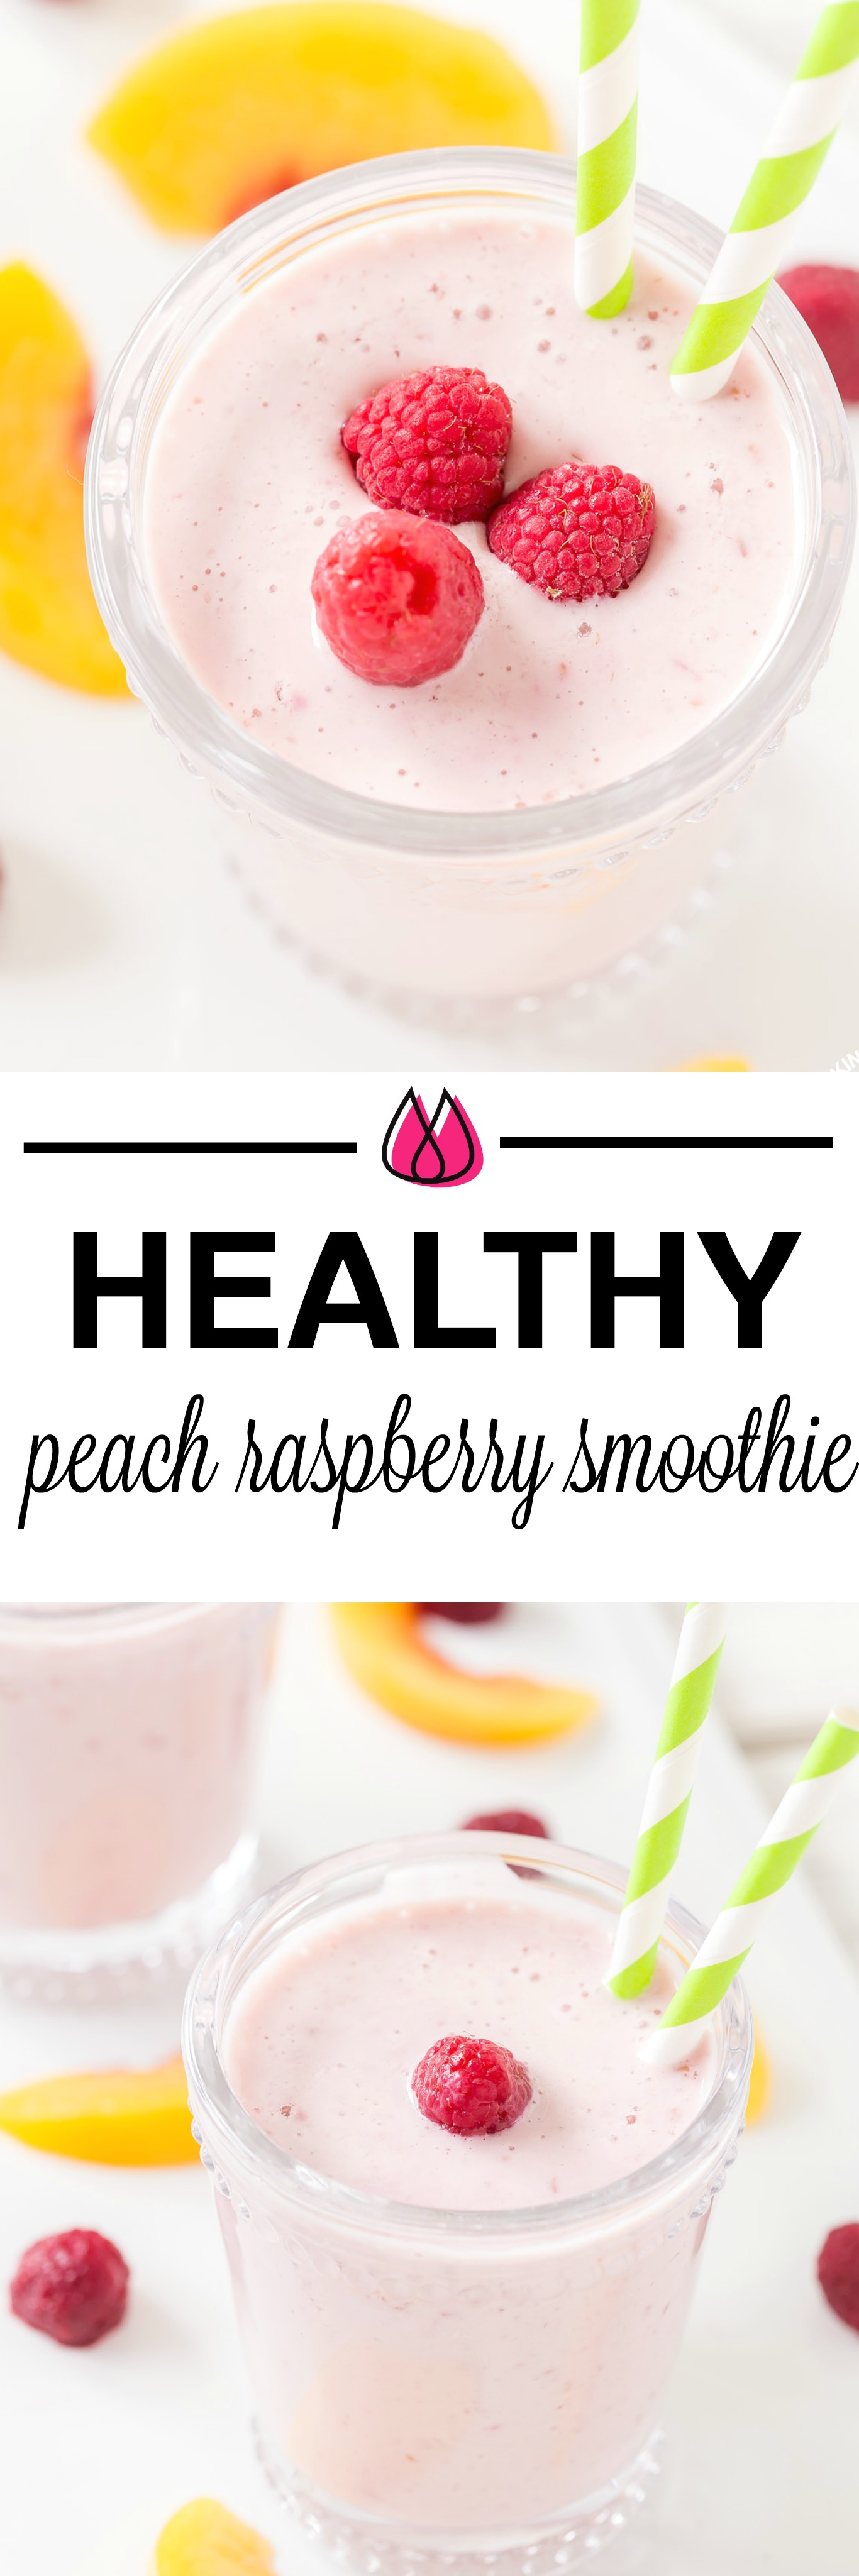 Making this Healthy Peach Raspberry Smoothie is easy to prepare and makes a delicious breakfast beverage or snack. It is so simple with frozen raspberries and peaches with yogurt, soy milk and a touch of honey. #smoothie # healthy #peachraspberry